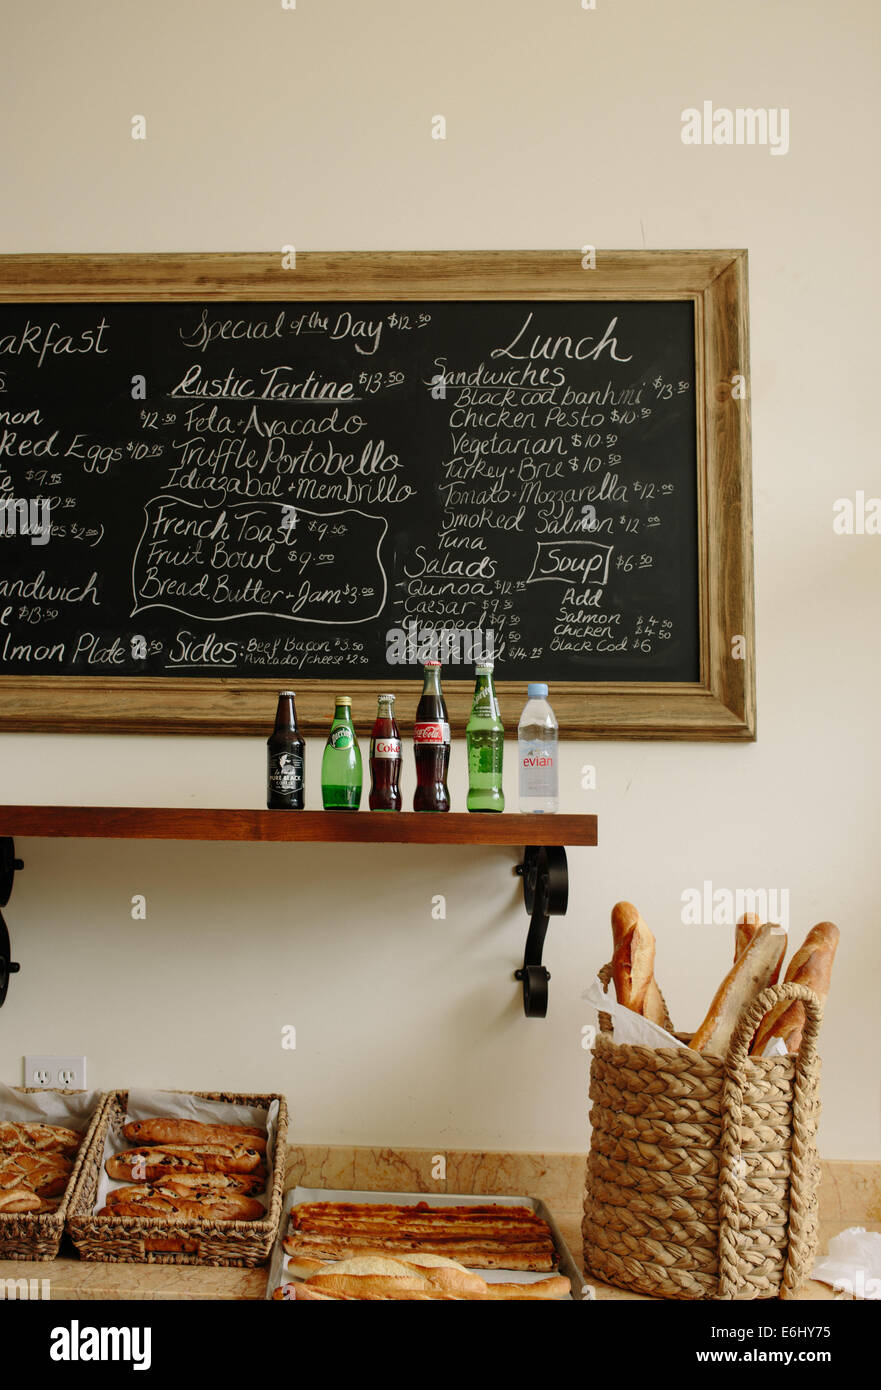 Handwritten Chalkboard Menu With Gold Frame At A French Bakery And Restaurant